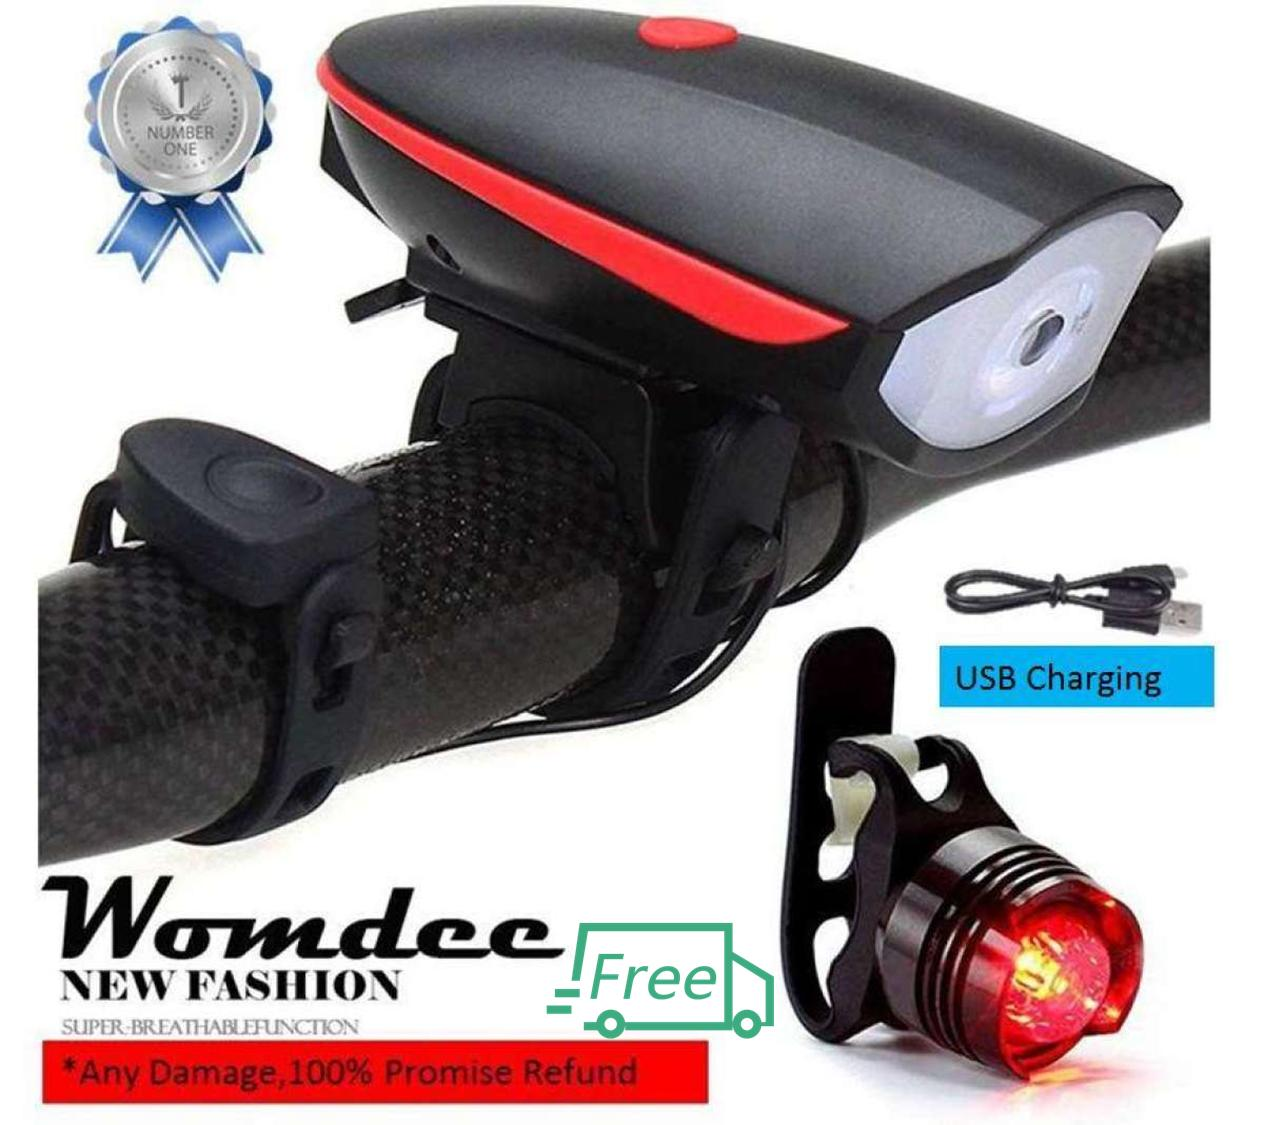 Womdee Headlight With Horn 120 Db And Tail Light for Cycling lover , Ultra Brightness And